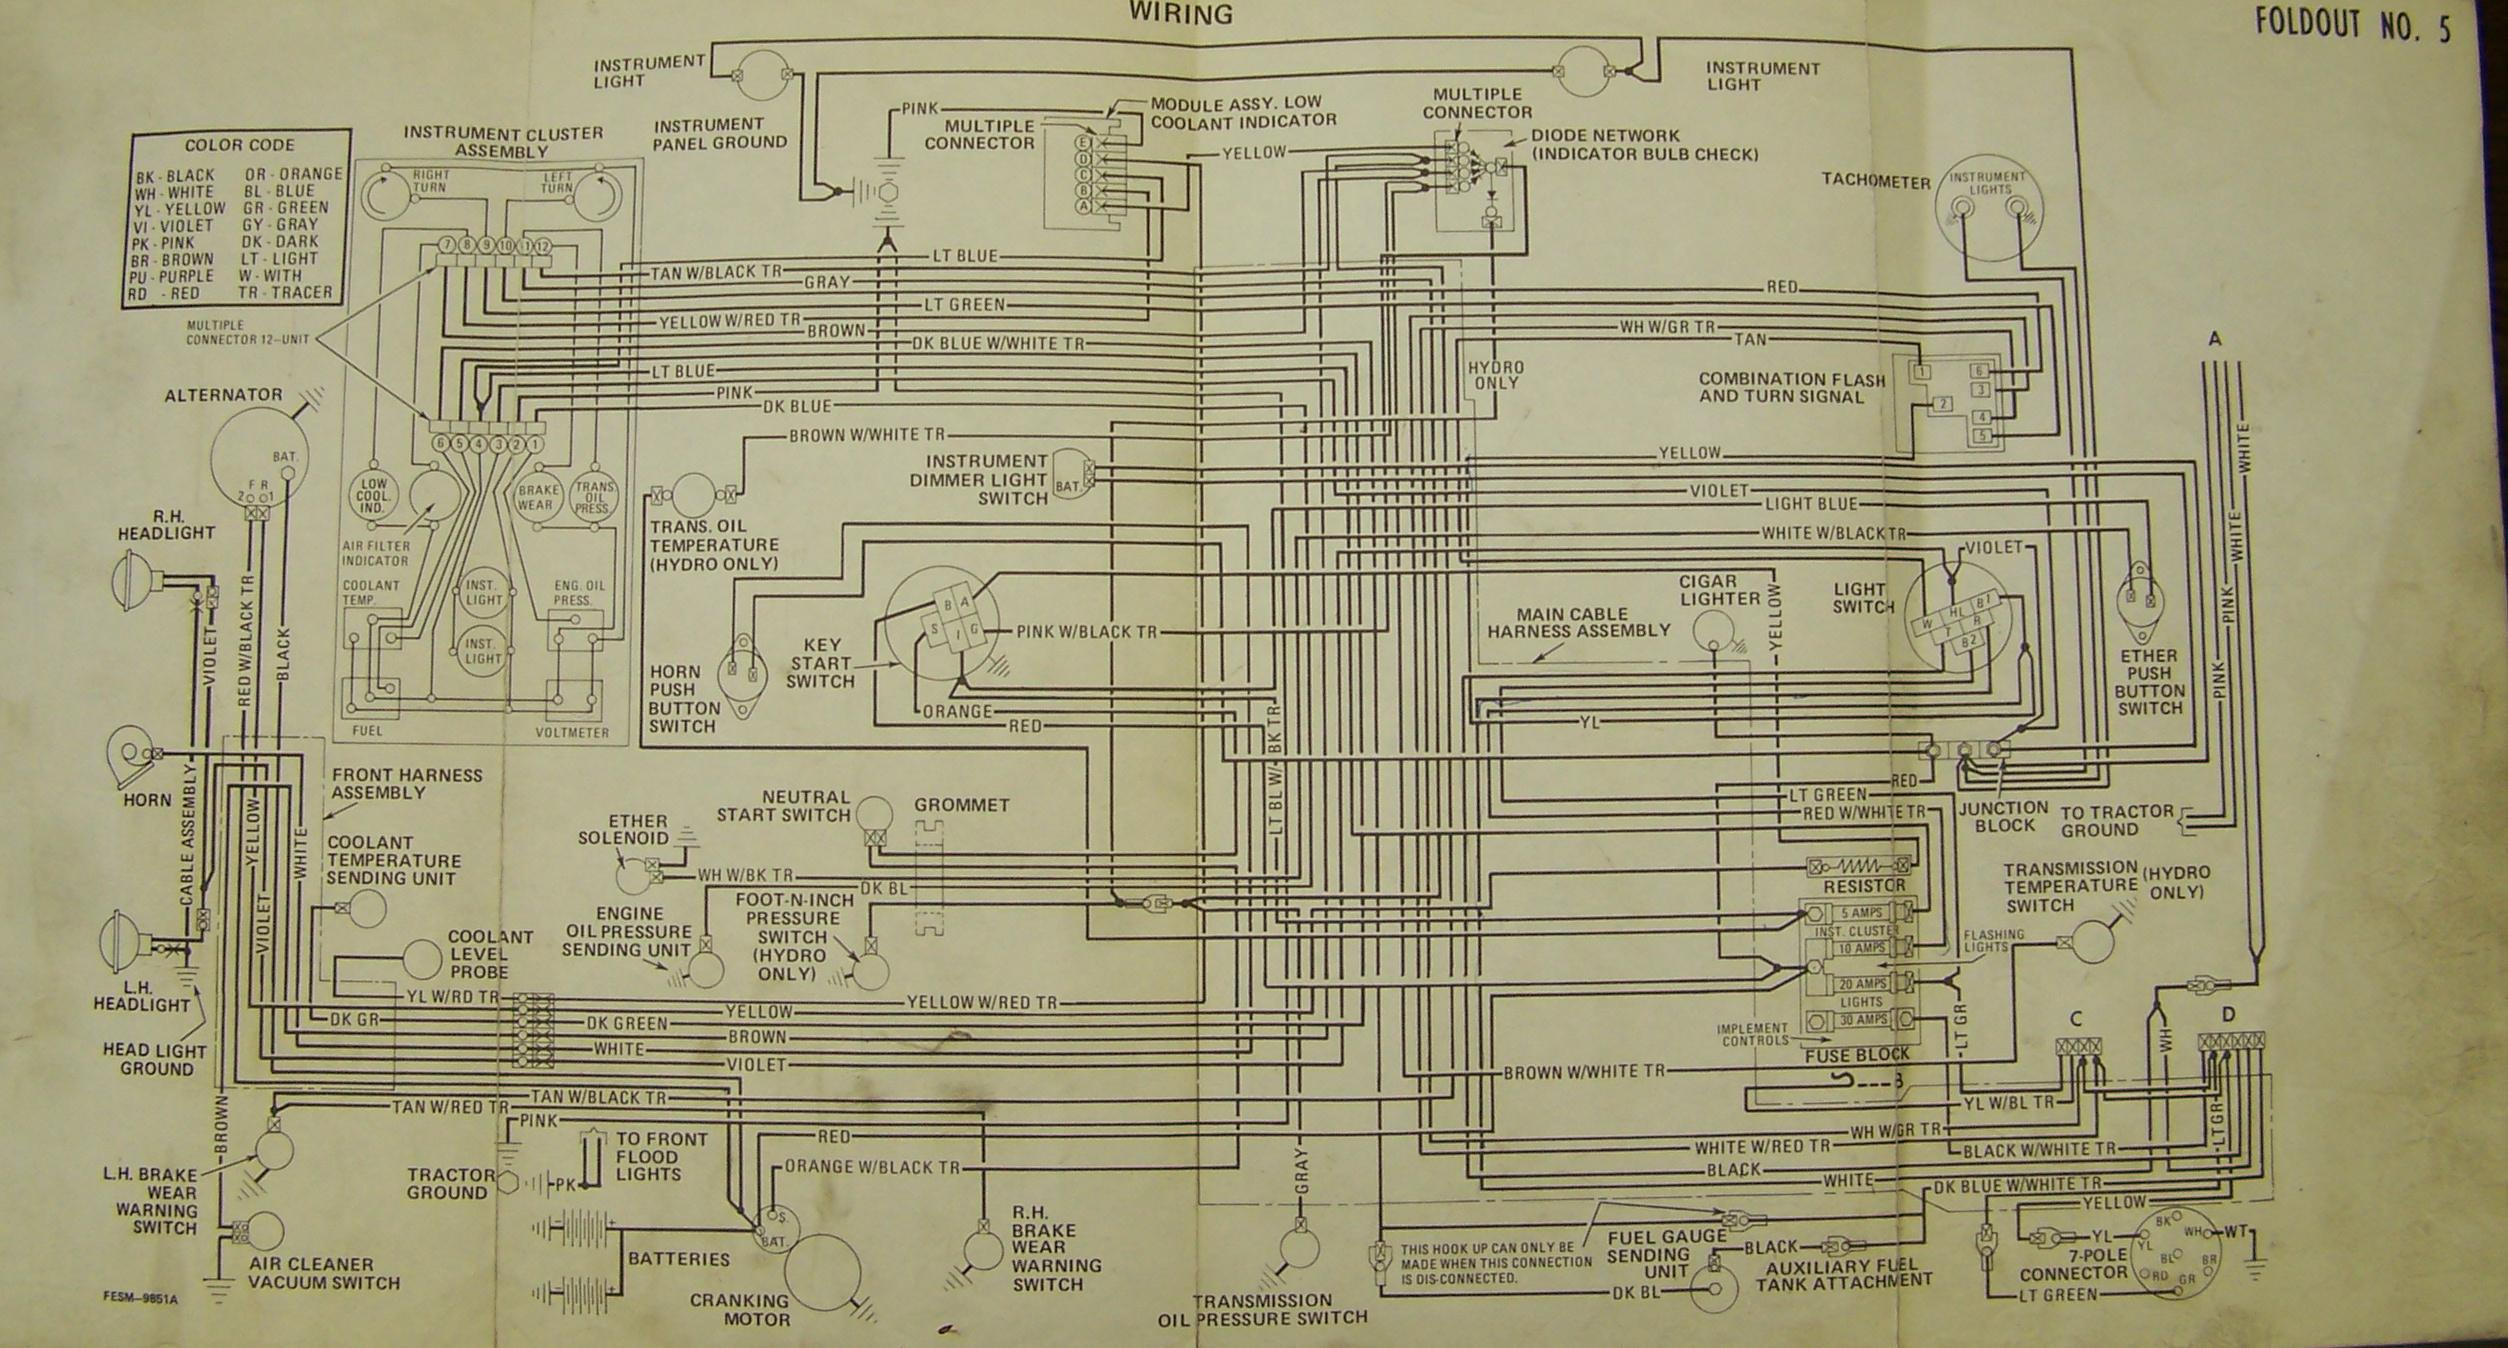 86series5 farmall 656 wiring harness farmall 656 tractor with loader Basic Electrical Wiring Diagrams at bayanpartner.co